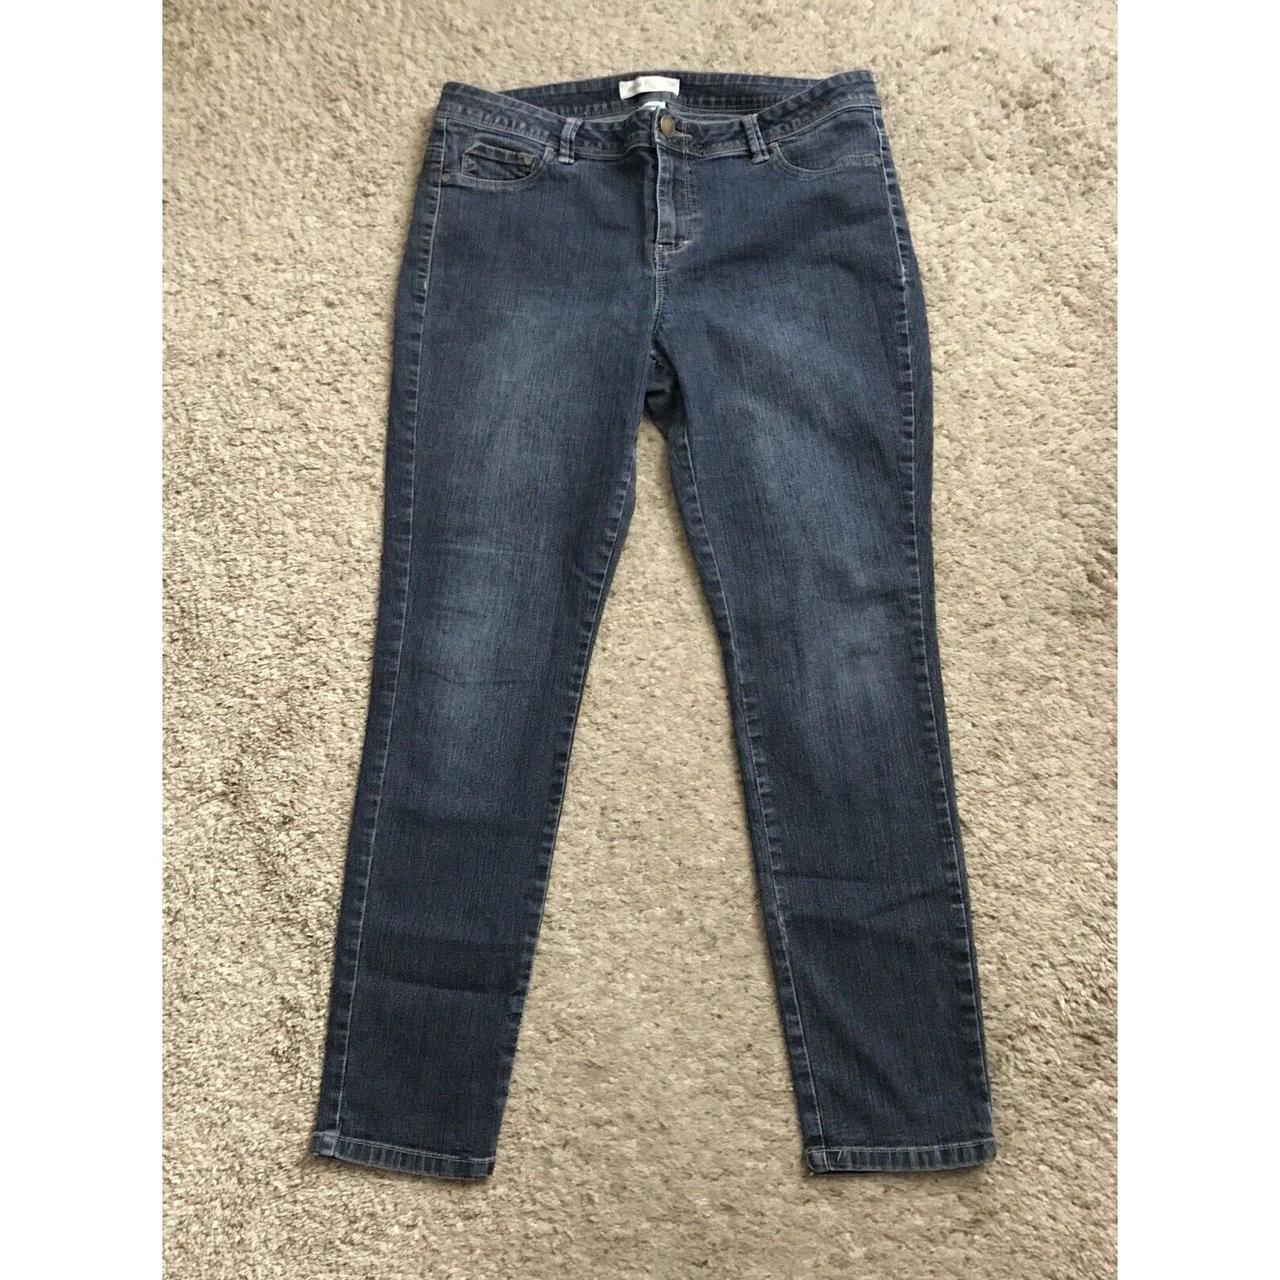 Product Image 1 - ROUTE 66 Womens Size 14